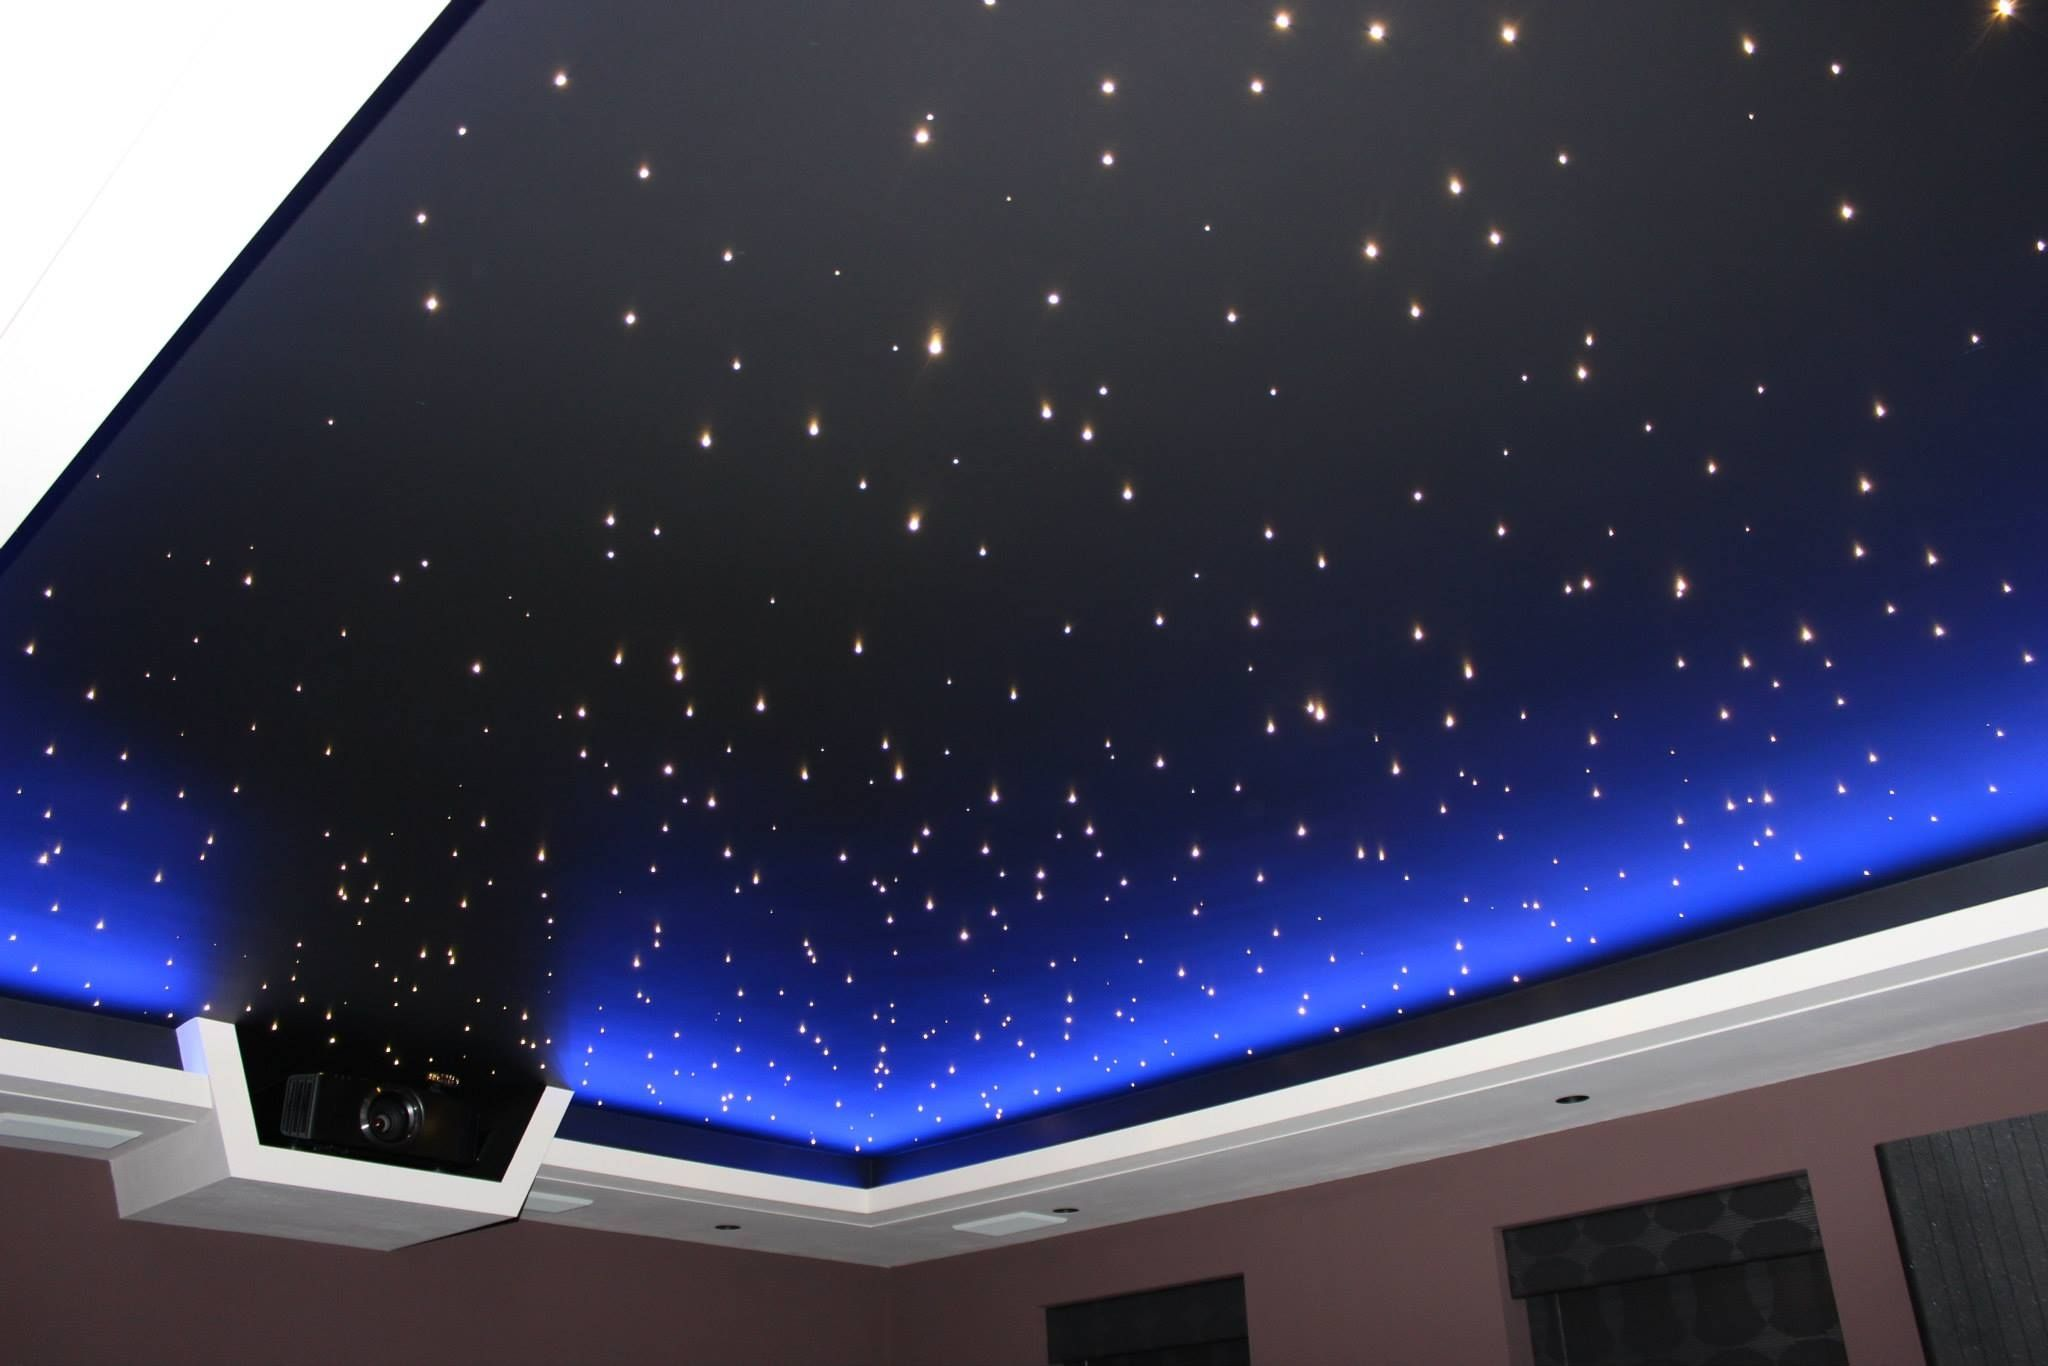 BEDROOM LED CEILING LIGHTS, IS IT WORTH IT?